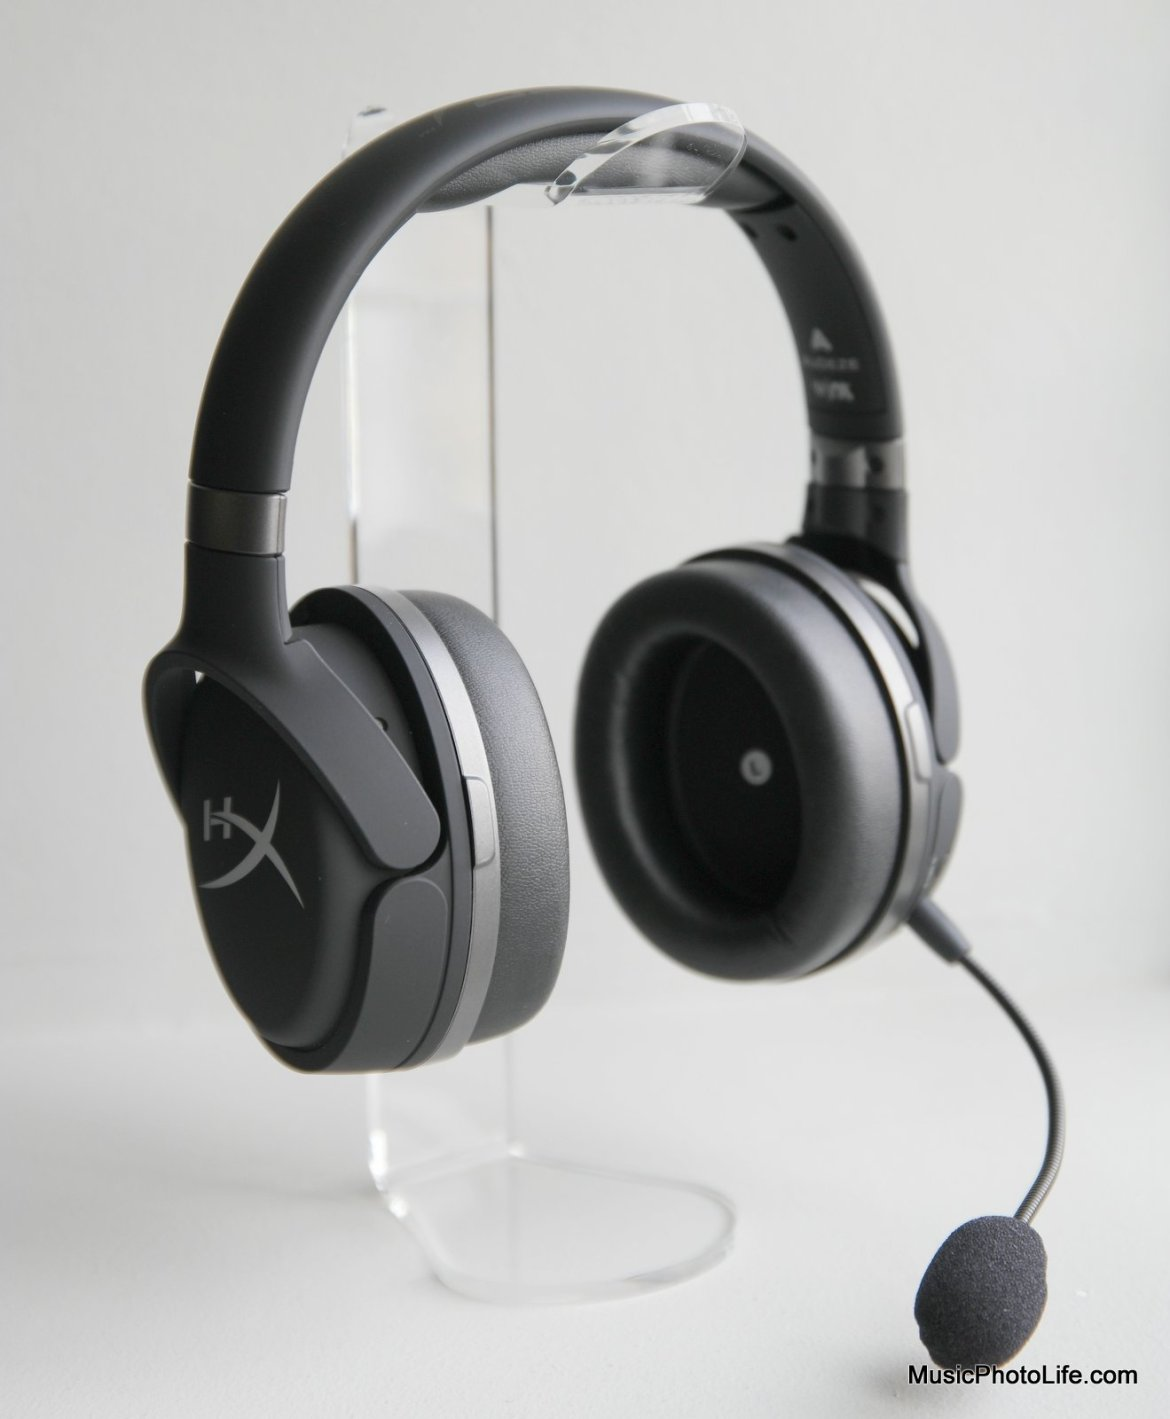 HyperX Cloud Orbit S 3D surround gaming headphones with Waves NX head tracking technology